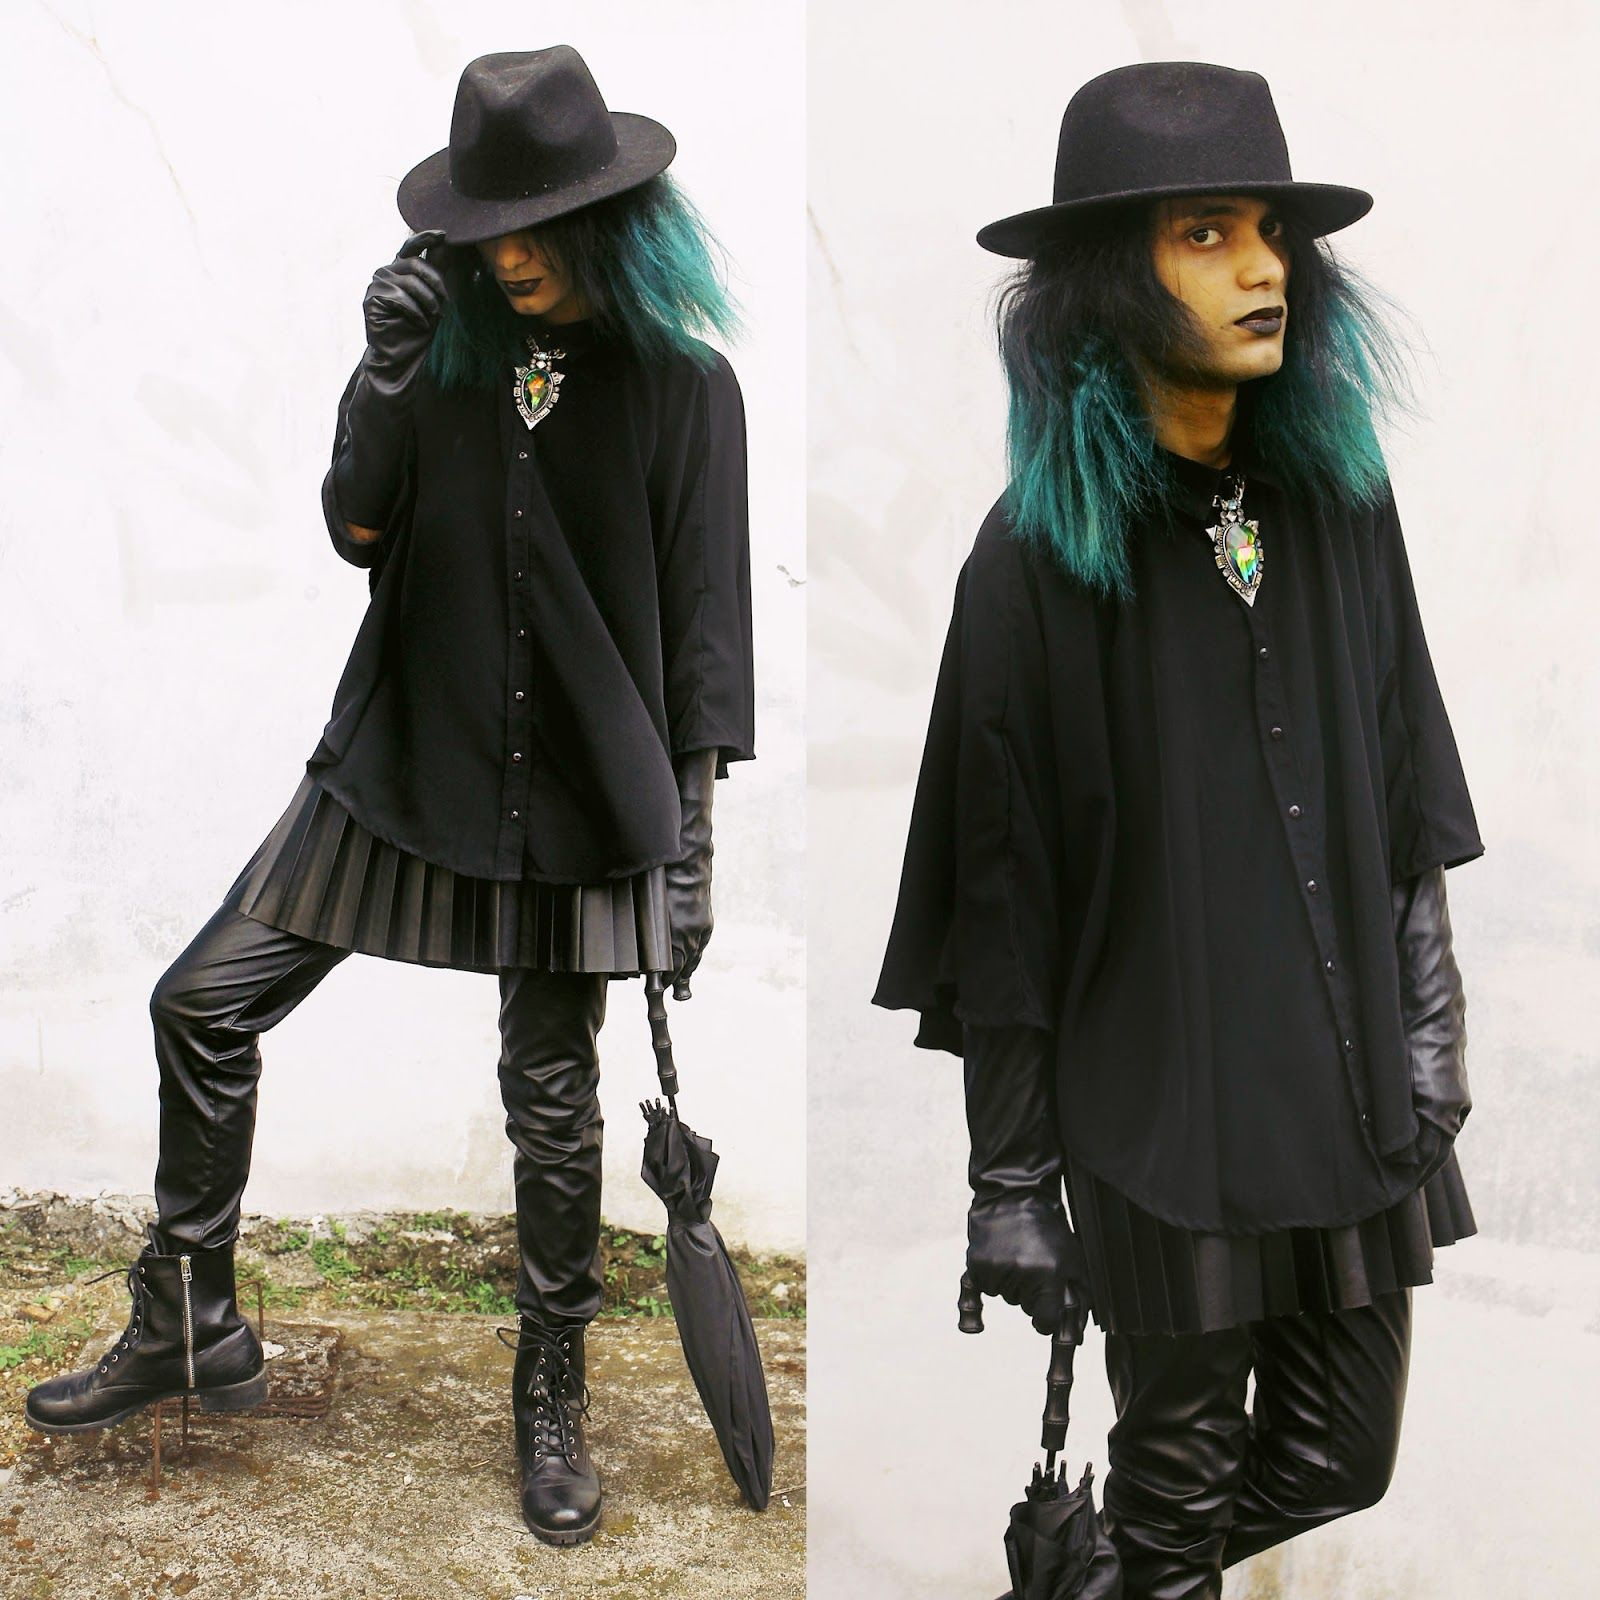 modern witch costume - Google Search | costume ideas | Pinterest ...